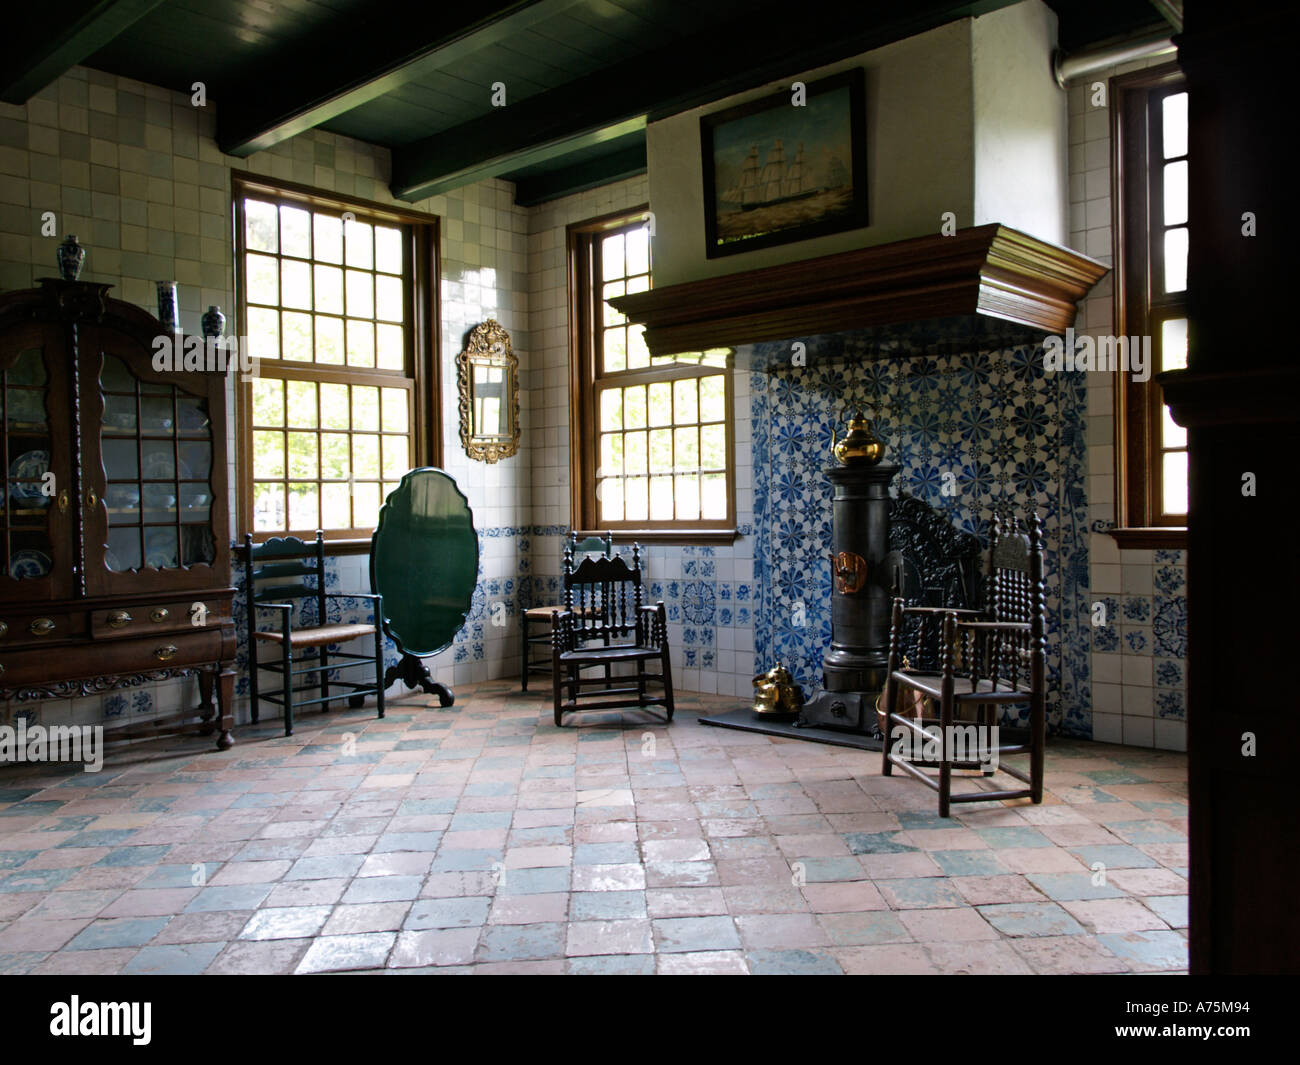 Historic Interior Of A Dutch Farmhouse Decorated With Period Furniture Originally From Midlum Friesland The Netherlands